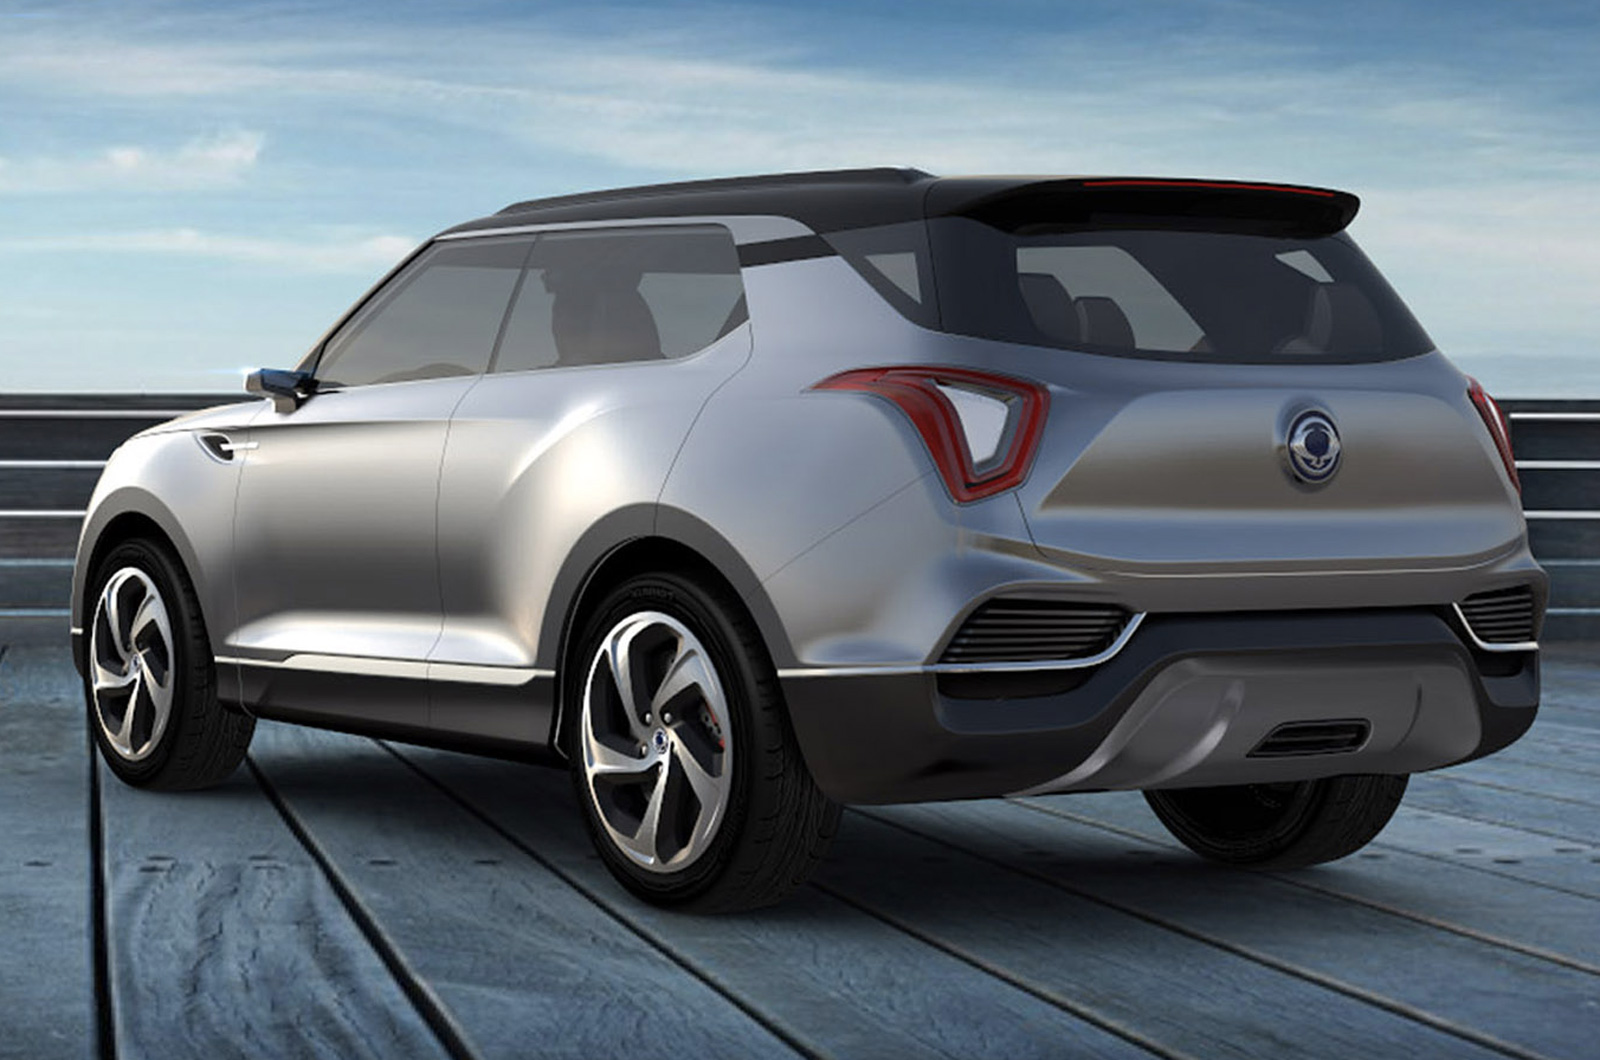 The Ssangyong Xlv Previews The Styling Of The Forthcoming X100 Baby